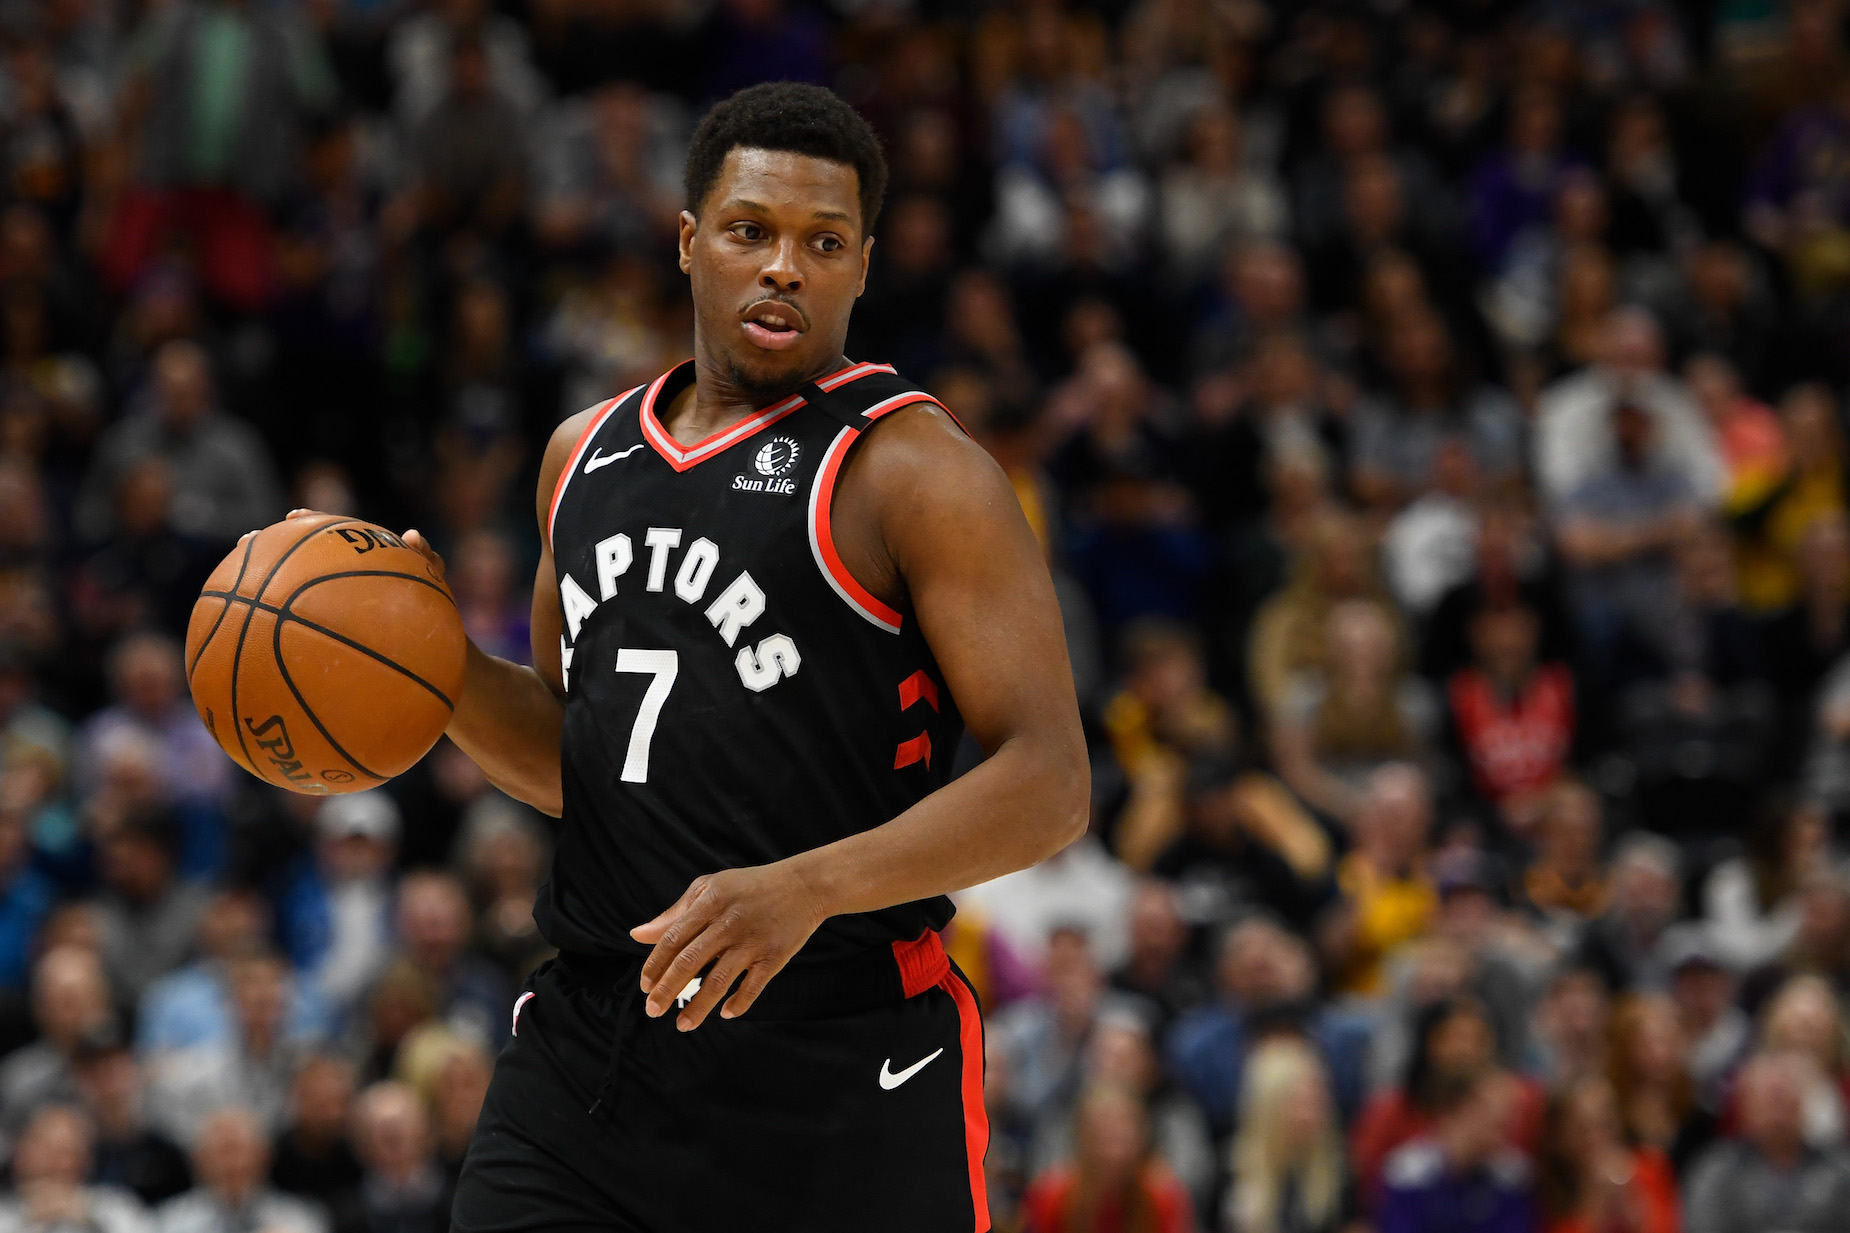 Kyle Lowry has built up a $55 million net worth and used that money to help Villanova.